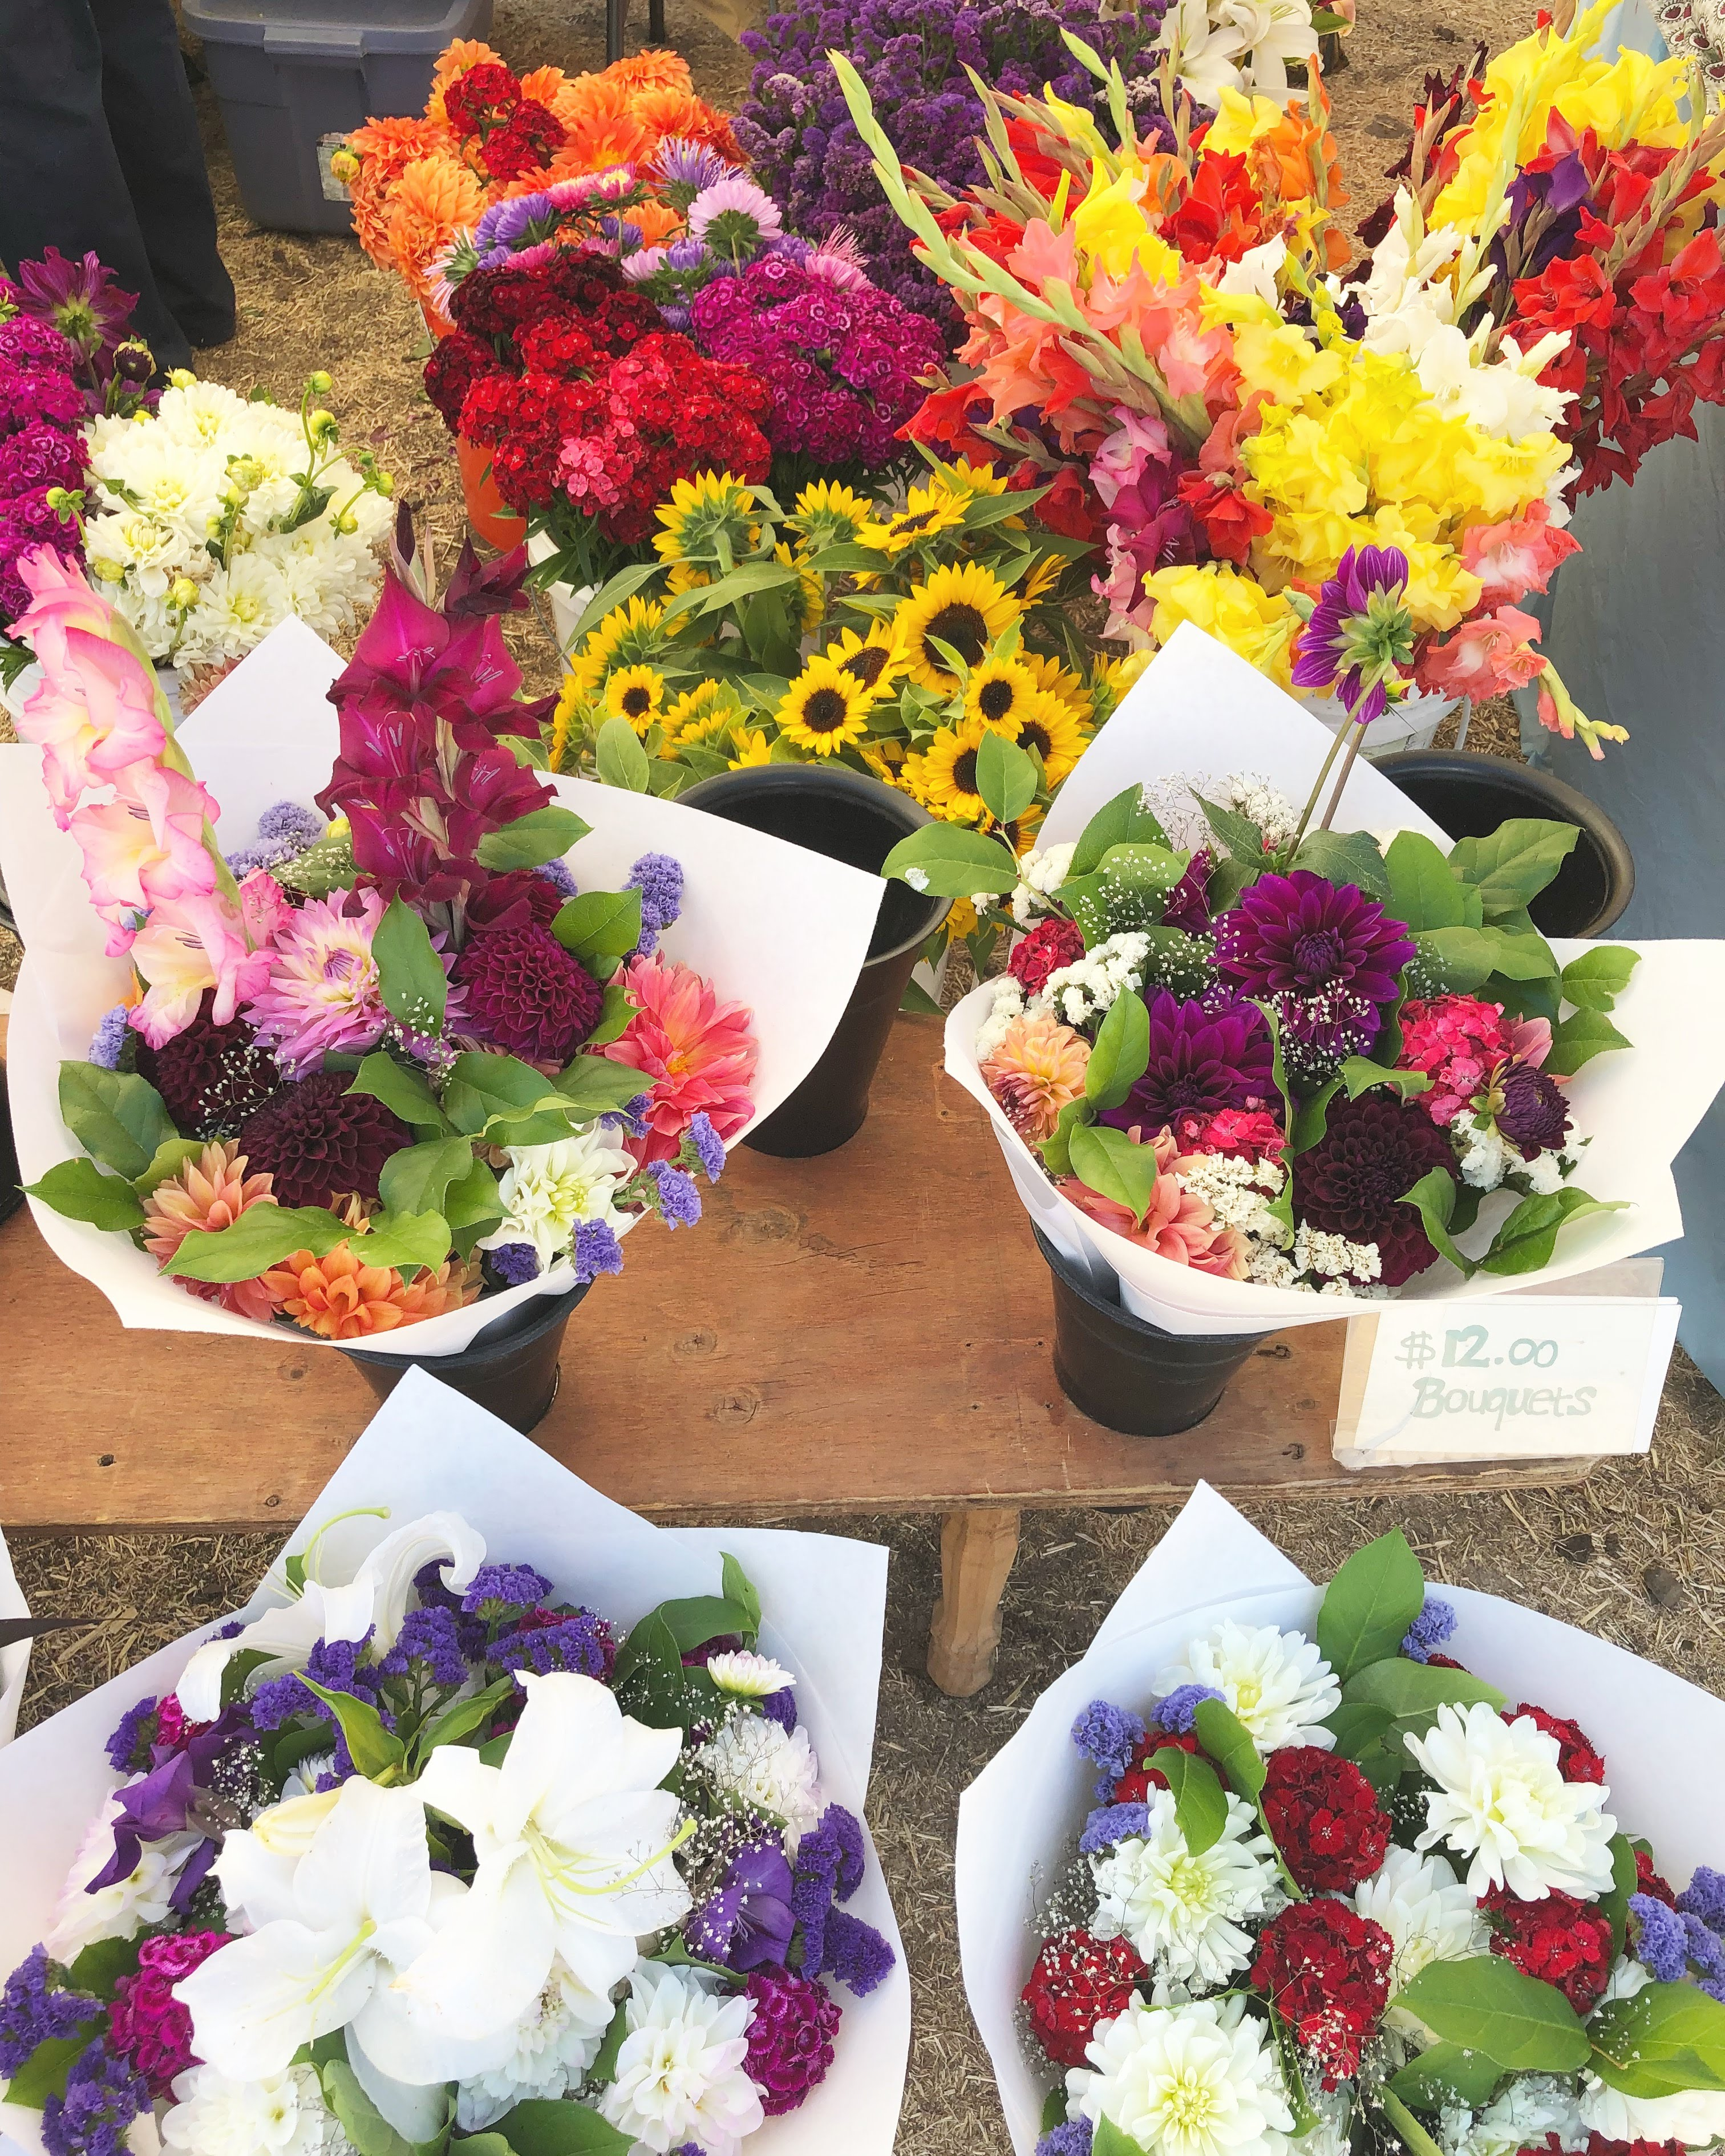 Decoration Sous Sol 2015 mount hood farmers market | 1859 oregon's magazine